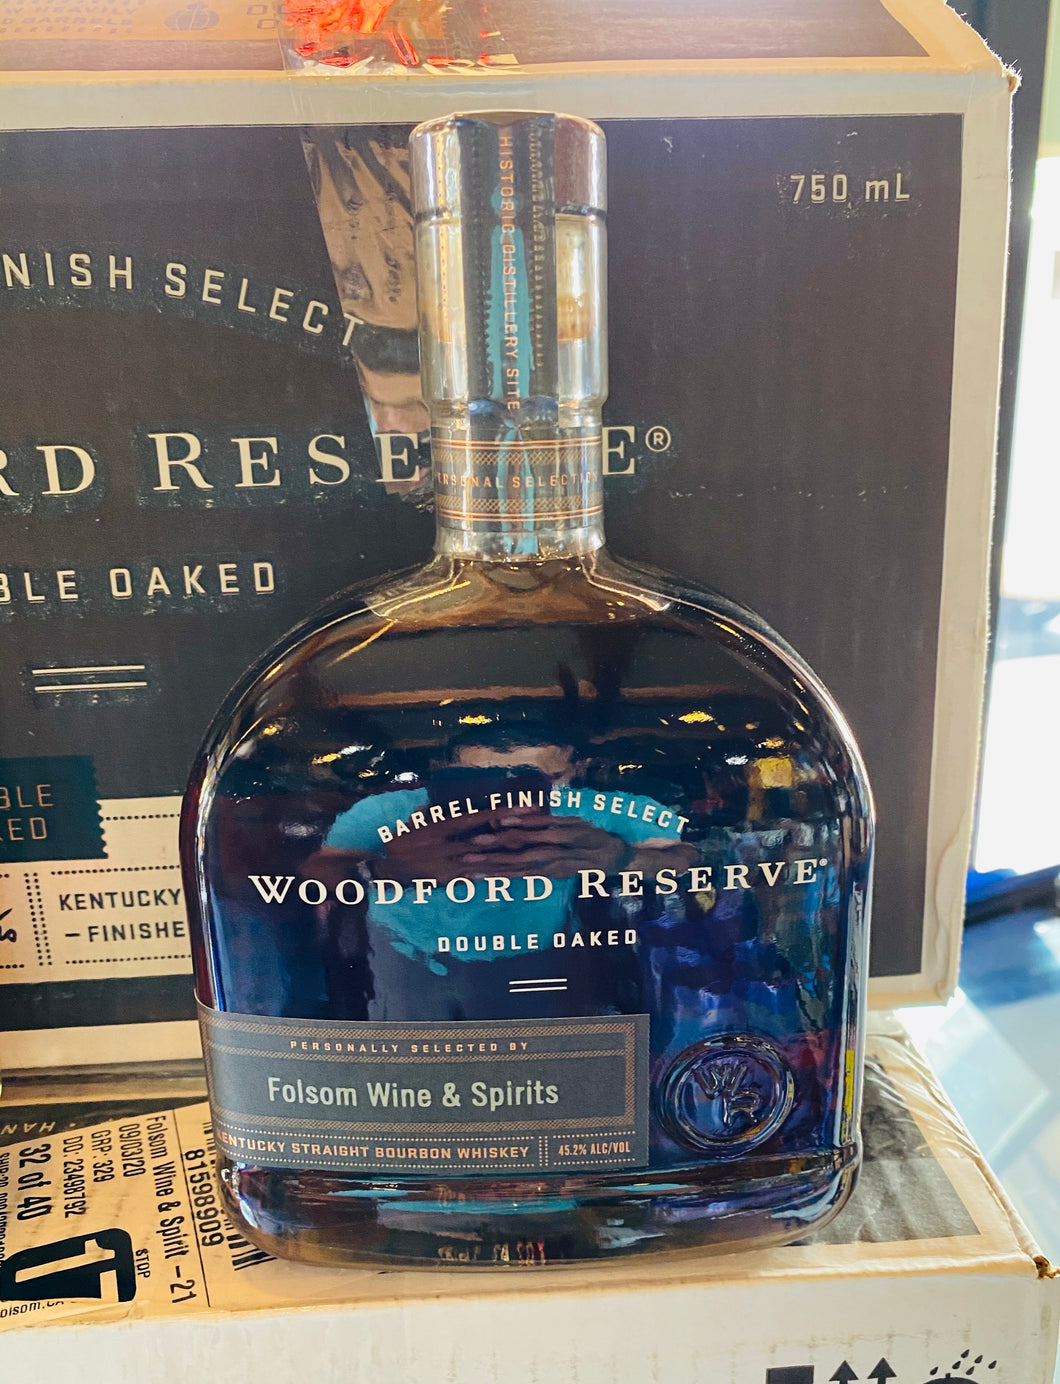 WOODFORD RESERVE DOUBLE OAKED SINGLE BARREL STORE PICK